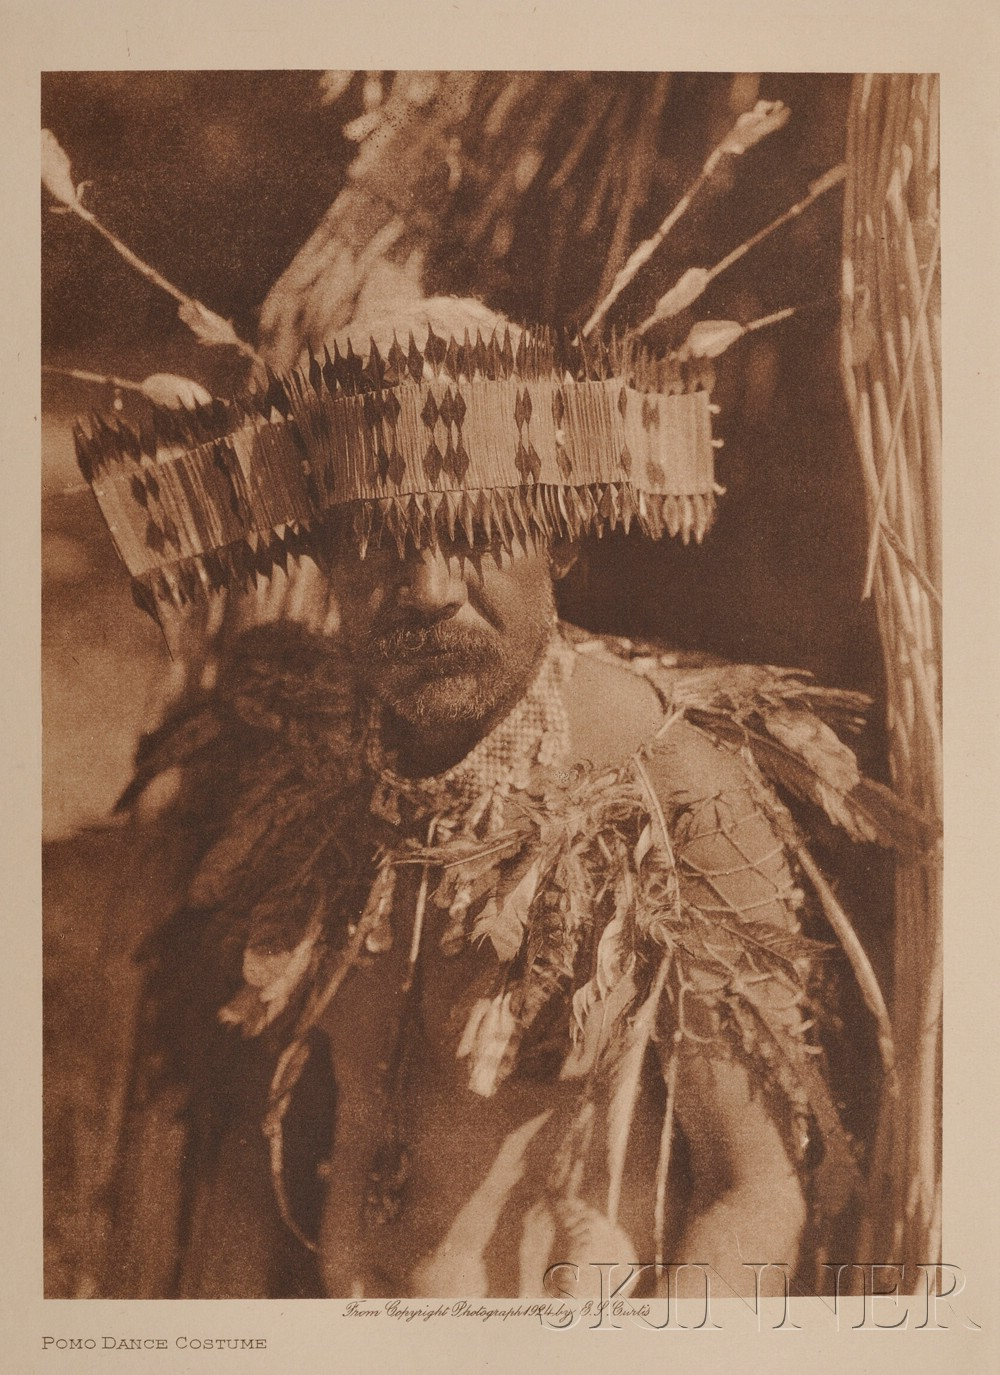 Curtis, Edward S. (1868-1952), The North American Indian. Being a Series of Volumes Picturing and Describing The Indians of the United